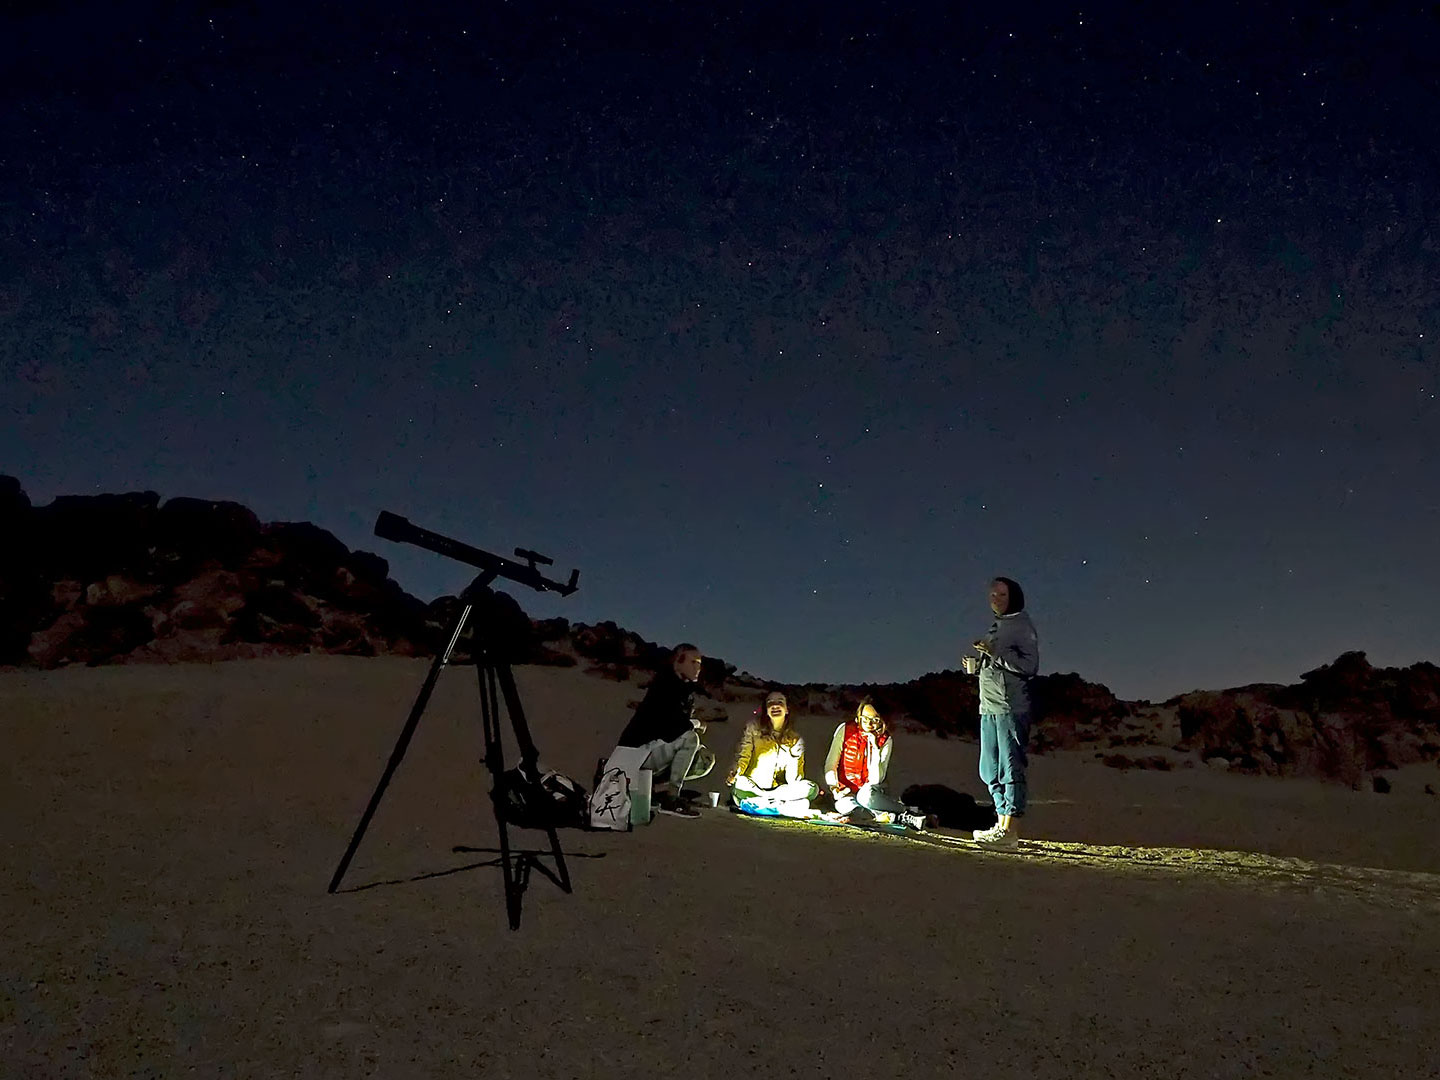 night-teide-telescope-4×3